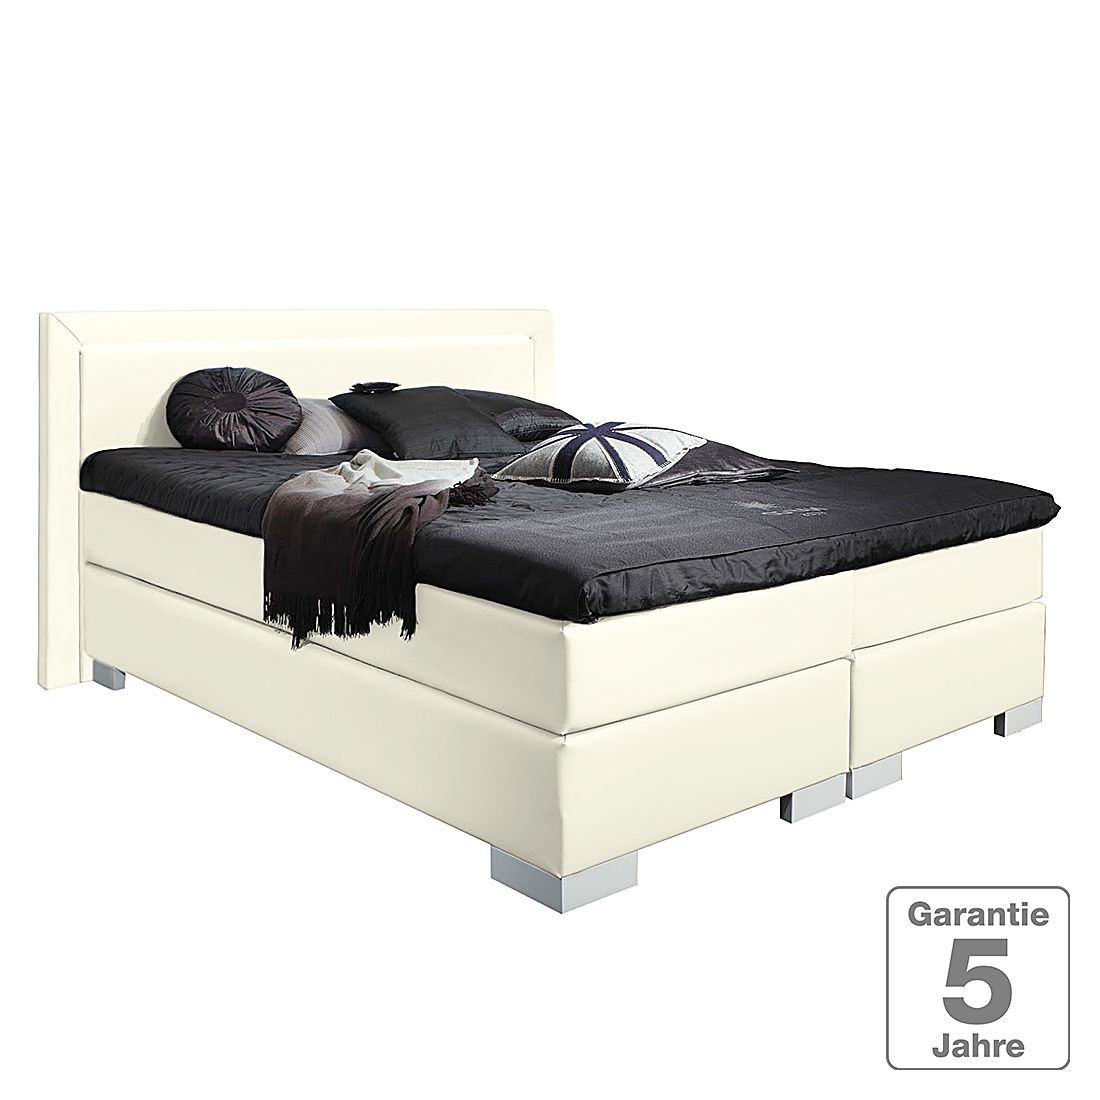 boxspringbett maila kunstleder 140 x 200cm h2 bis 80 kg creme nova dream sleepline. Black Bedroom Furniture Sets. Home Design Ideas